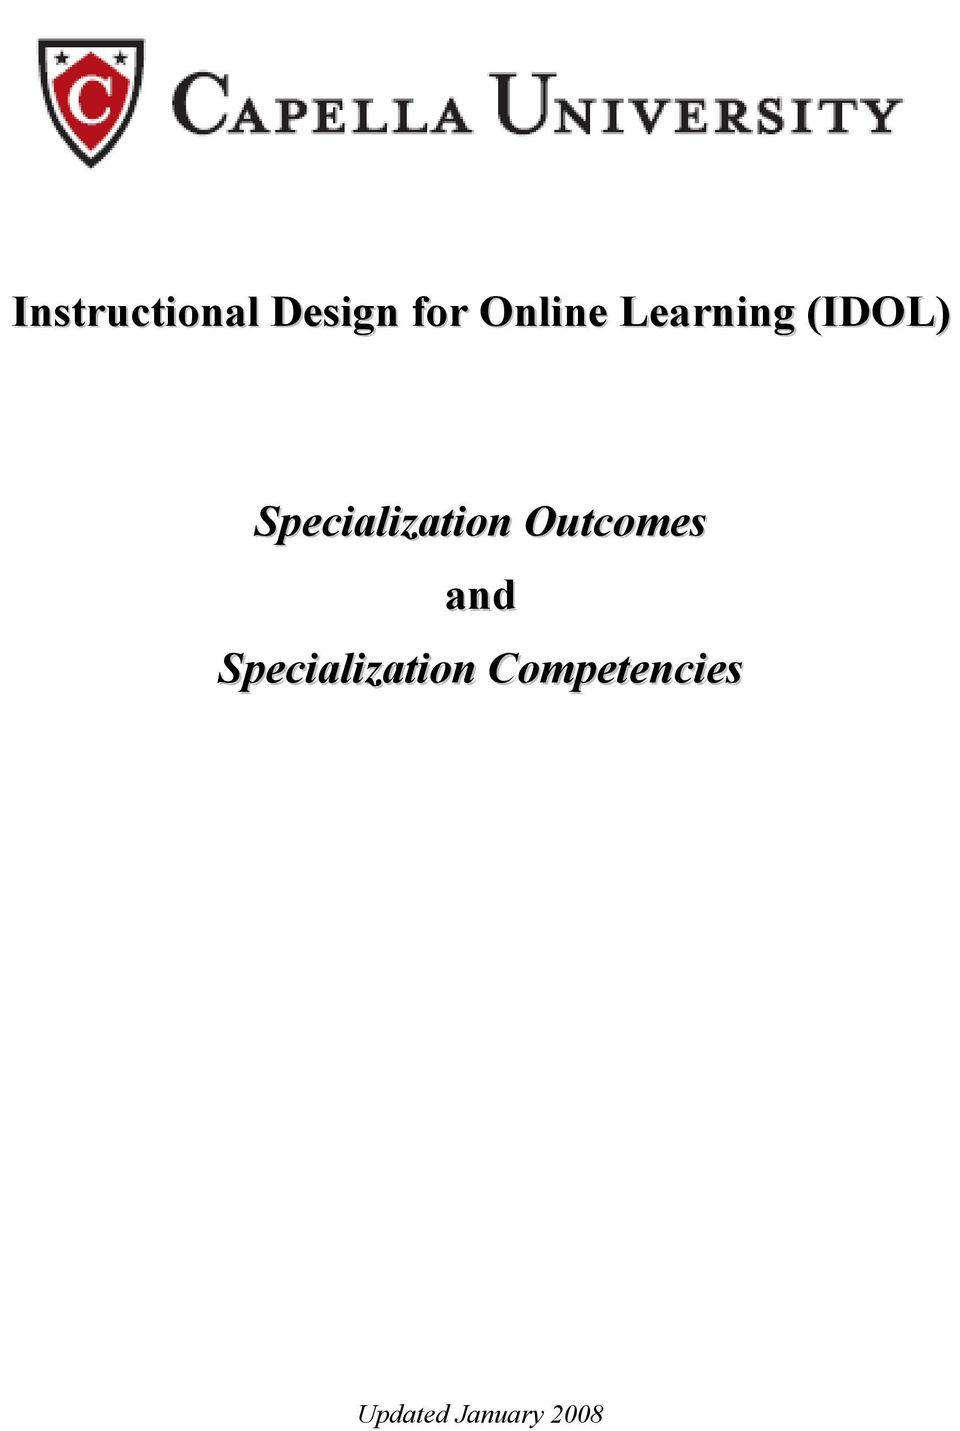 Specialization Outcomes and